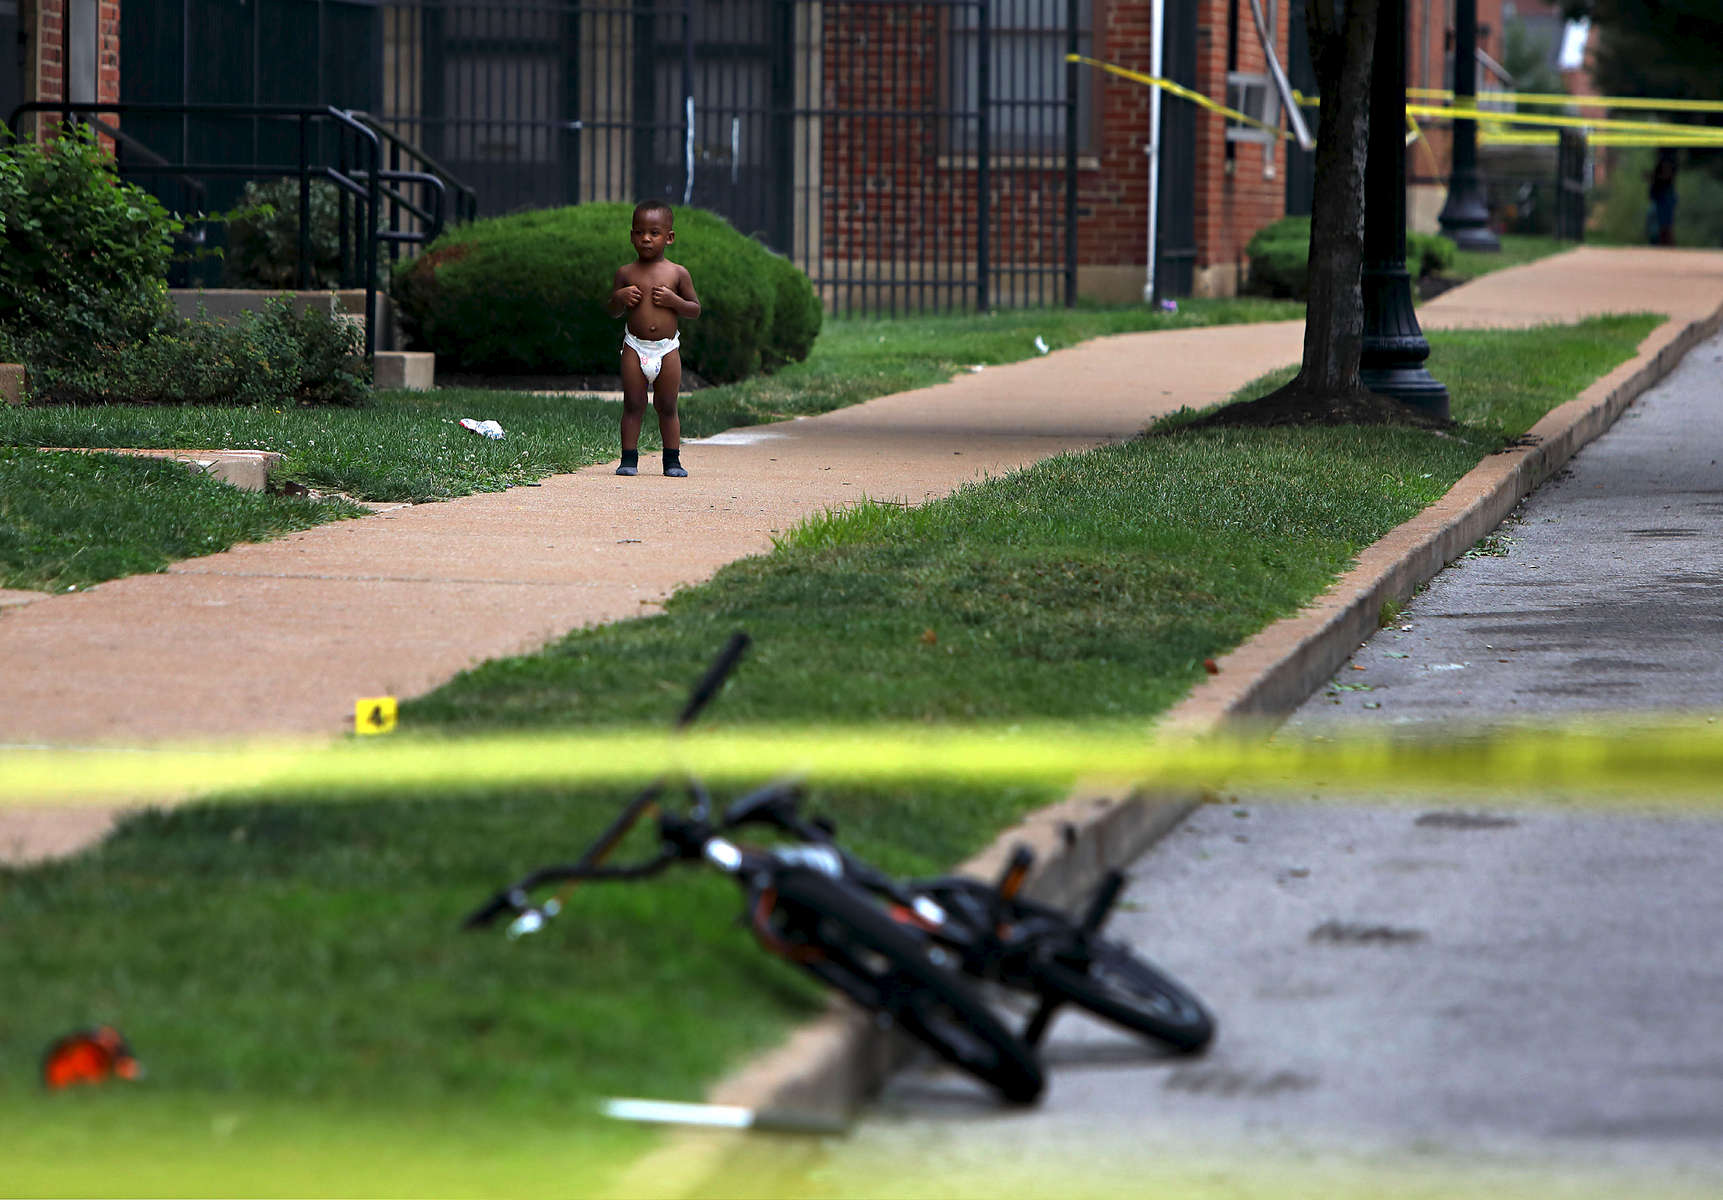 Toddler Donovan Allen, 2, stands outside his home in the 1100 block of Dillion Street as police investigate a fatal shooting in the 1400 block of Kealty Lane in St. Louis on Monday, Aug. 7, 2017. Donovan's mother, not pictured, was sitting on the front steps of her home to the left watching police investigate the scene. Police tape and evidence markers denoting bullet casings were put up right outside the front steps of the Allens home. It was the third fatal shooting in a month that occurred within 100 yards of Donovan's home. The suspect in the shooting returned to the scene driving a minivan and surrendered to police, who recovered a gun from the vehicle.Photo by David Carson, dcarson@post-dispatch.com